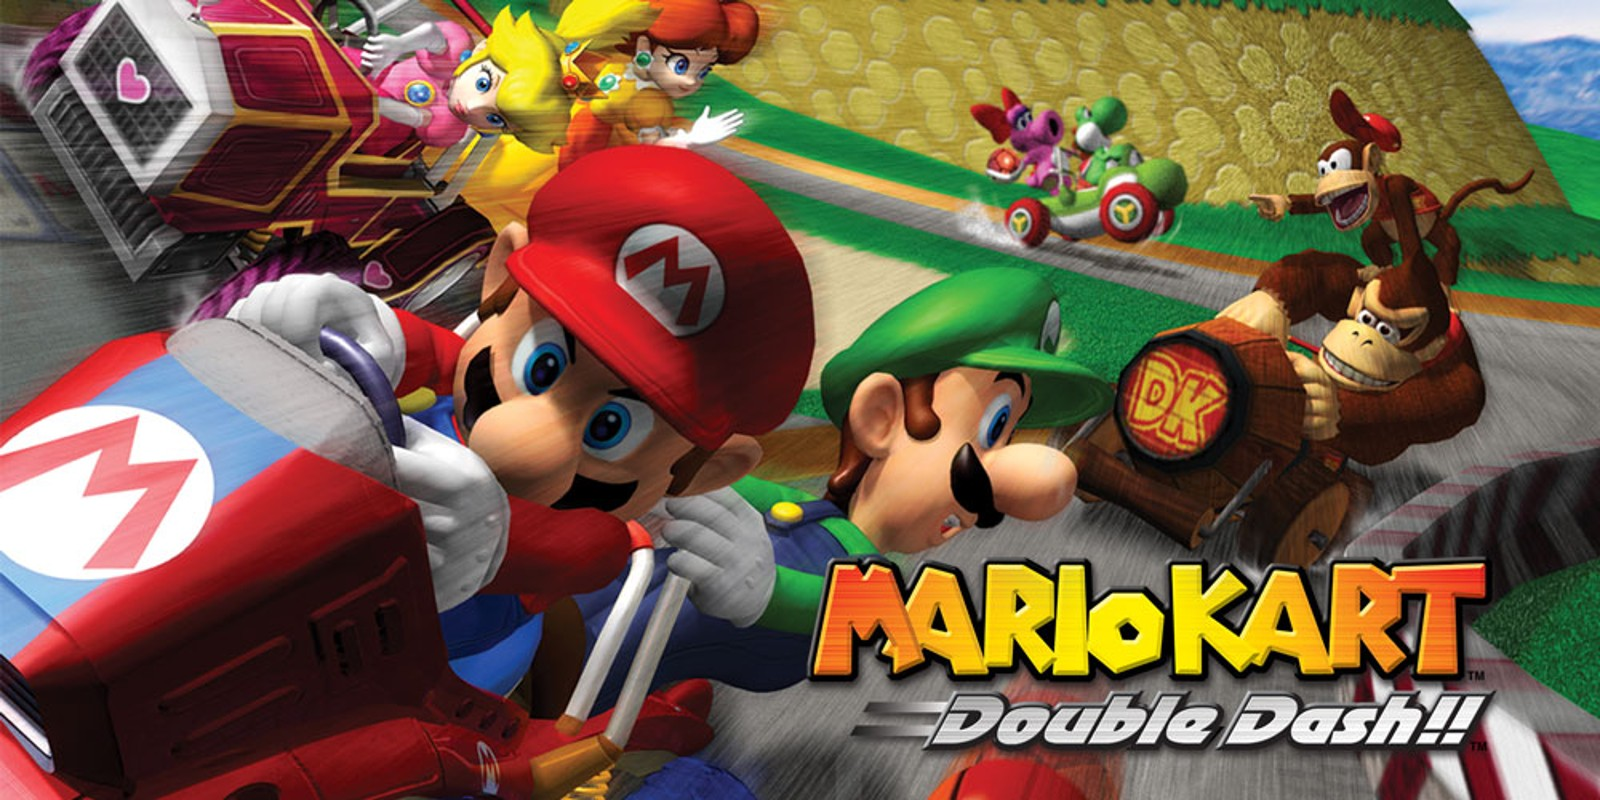 Last Retro Game You Finished And Your Thoughts - Page 10 SI_GCN_MarioKartDoubleDash_image1600w